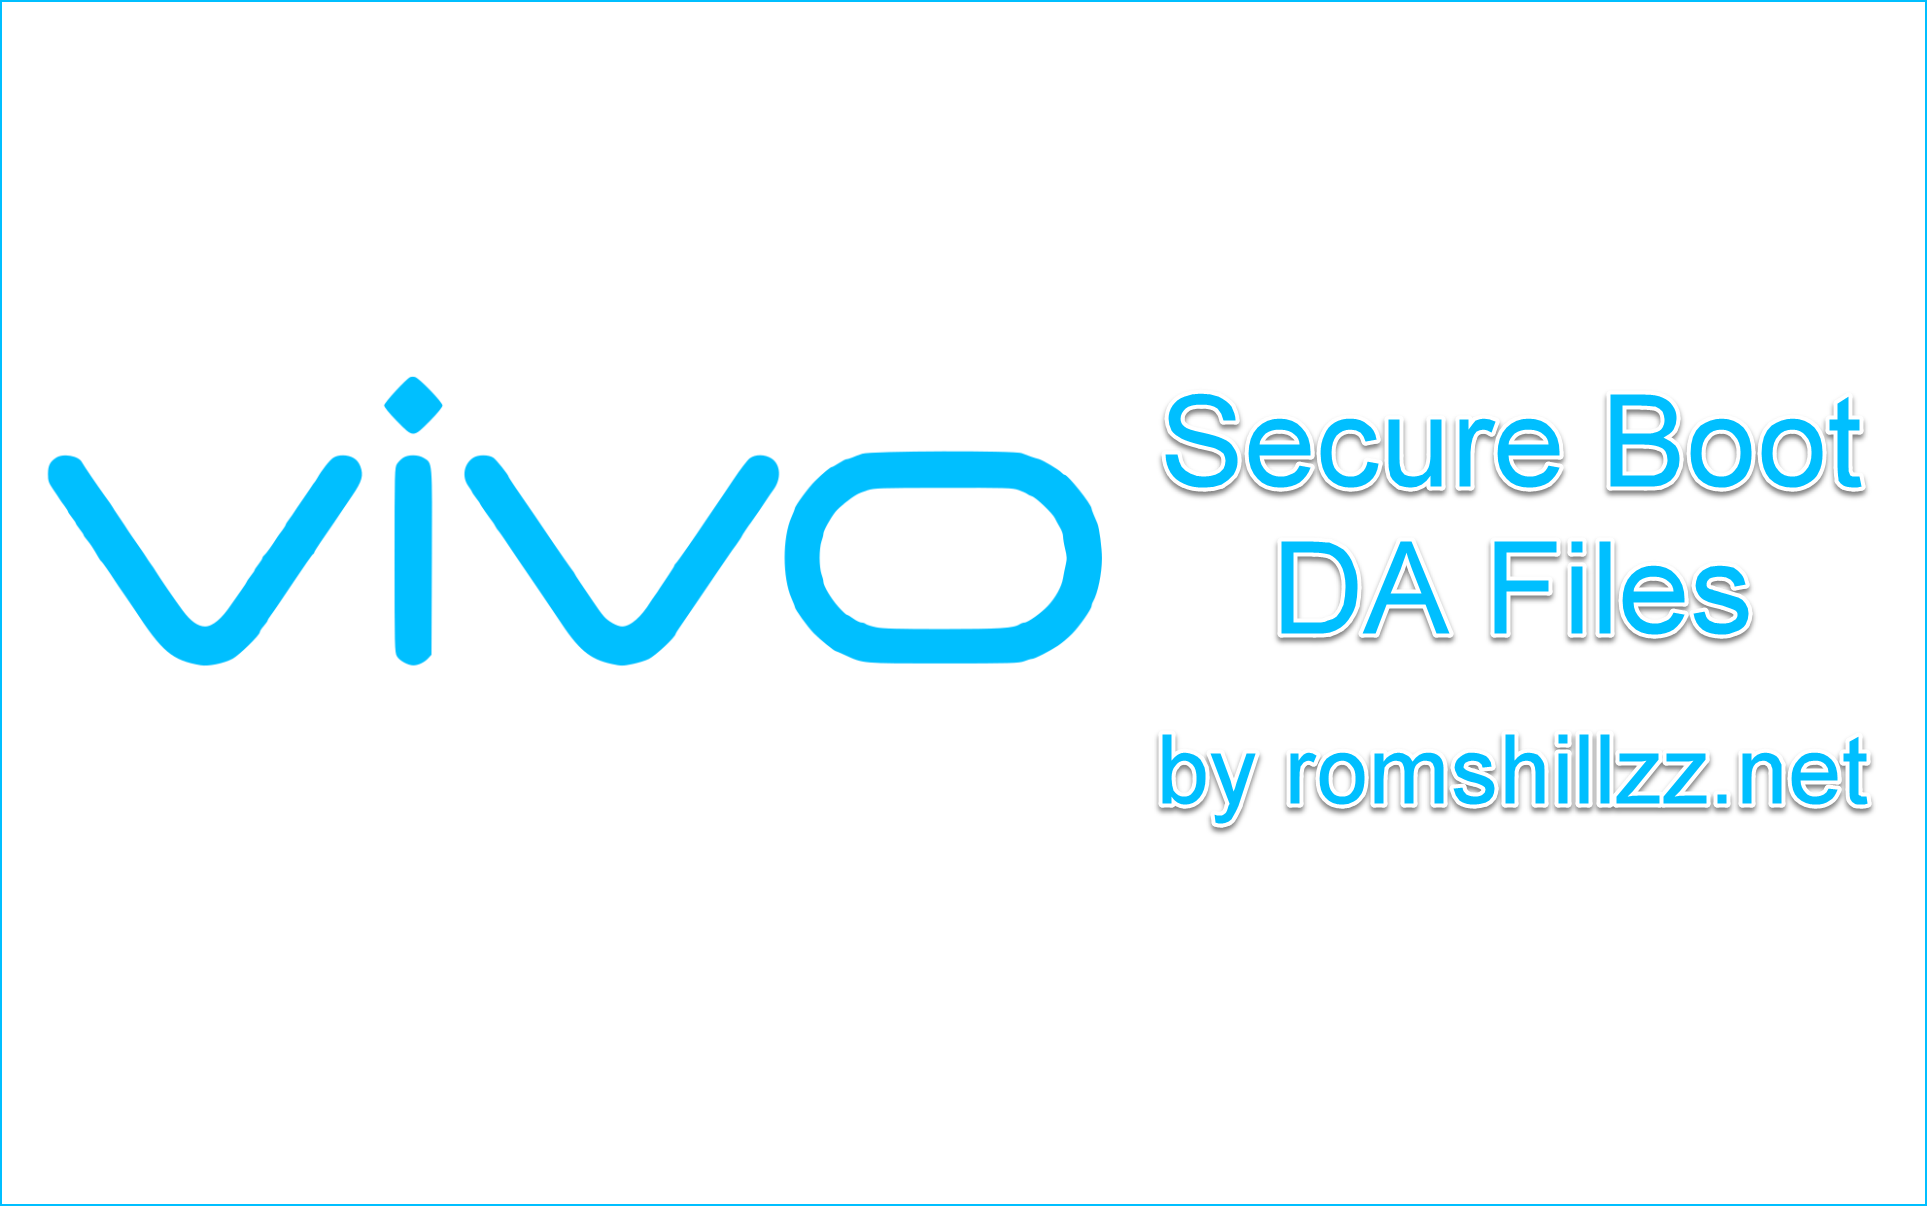 vivo-secure-boot.png